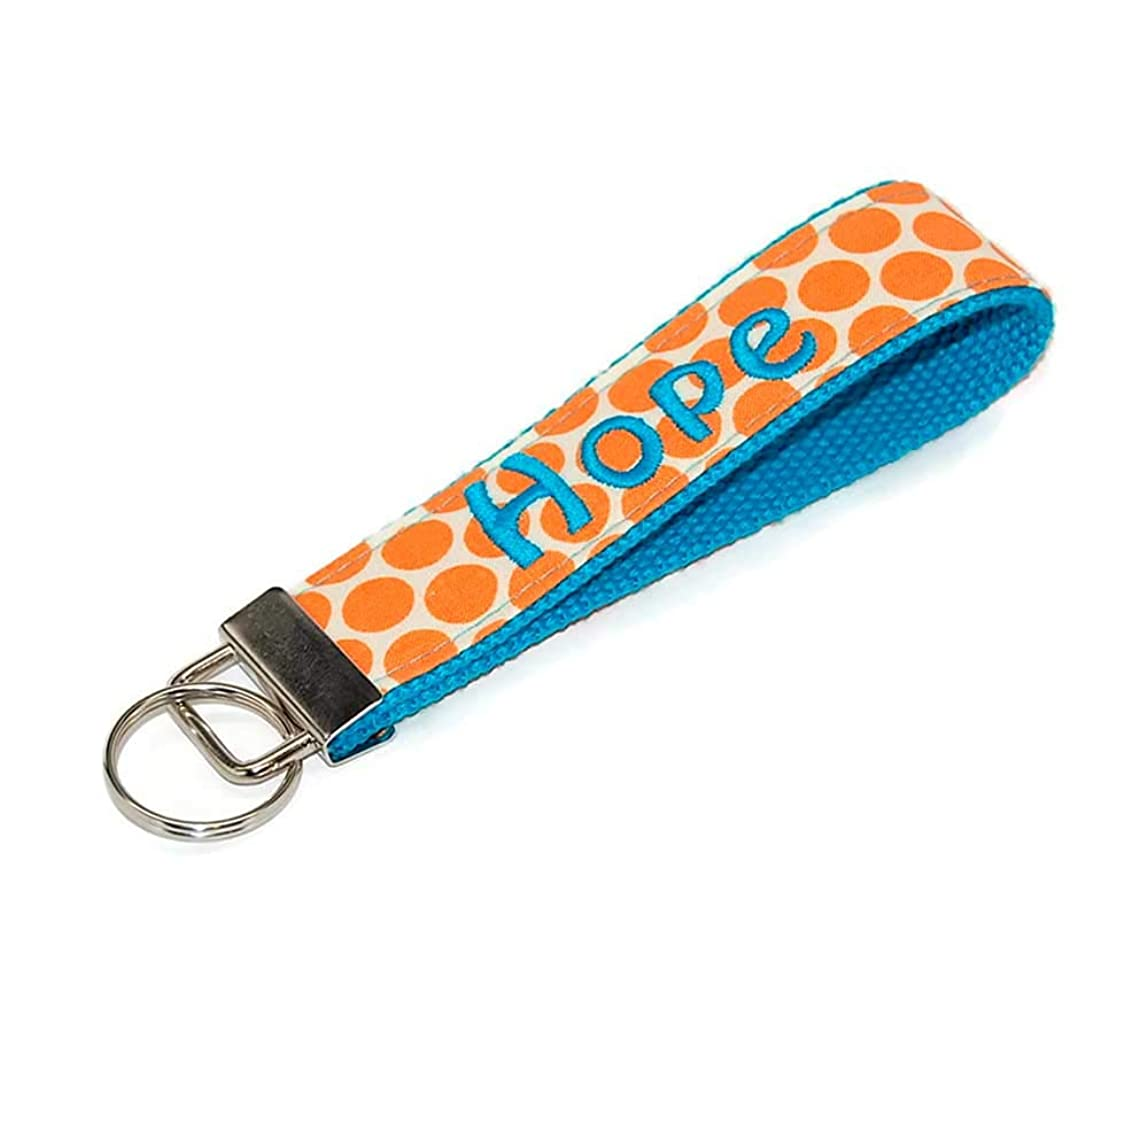 Orange Polka Dot Keychain Personalized Key Fob with Your Choice of Name in Turquoise Blue Free Shipping zhojolf663878